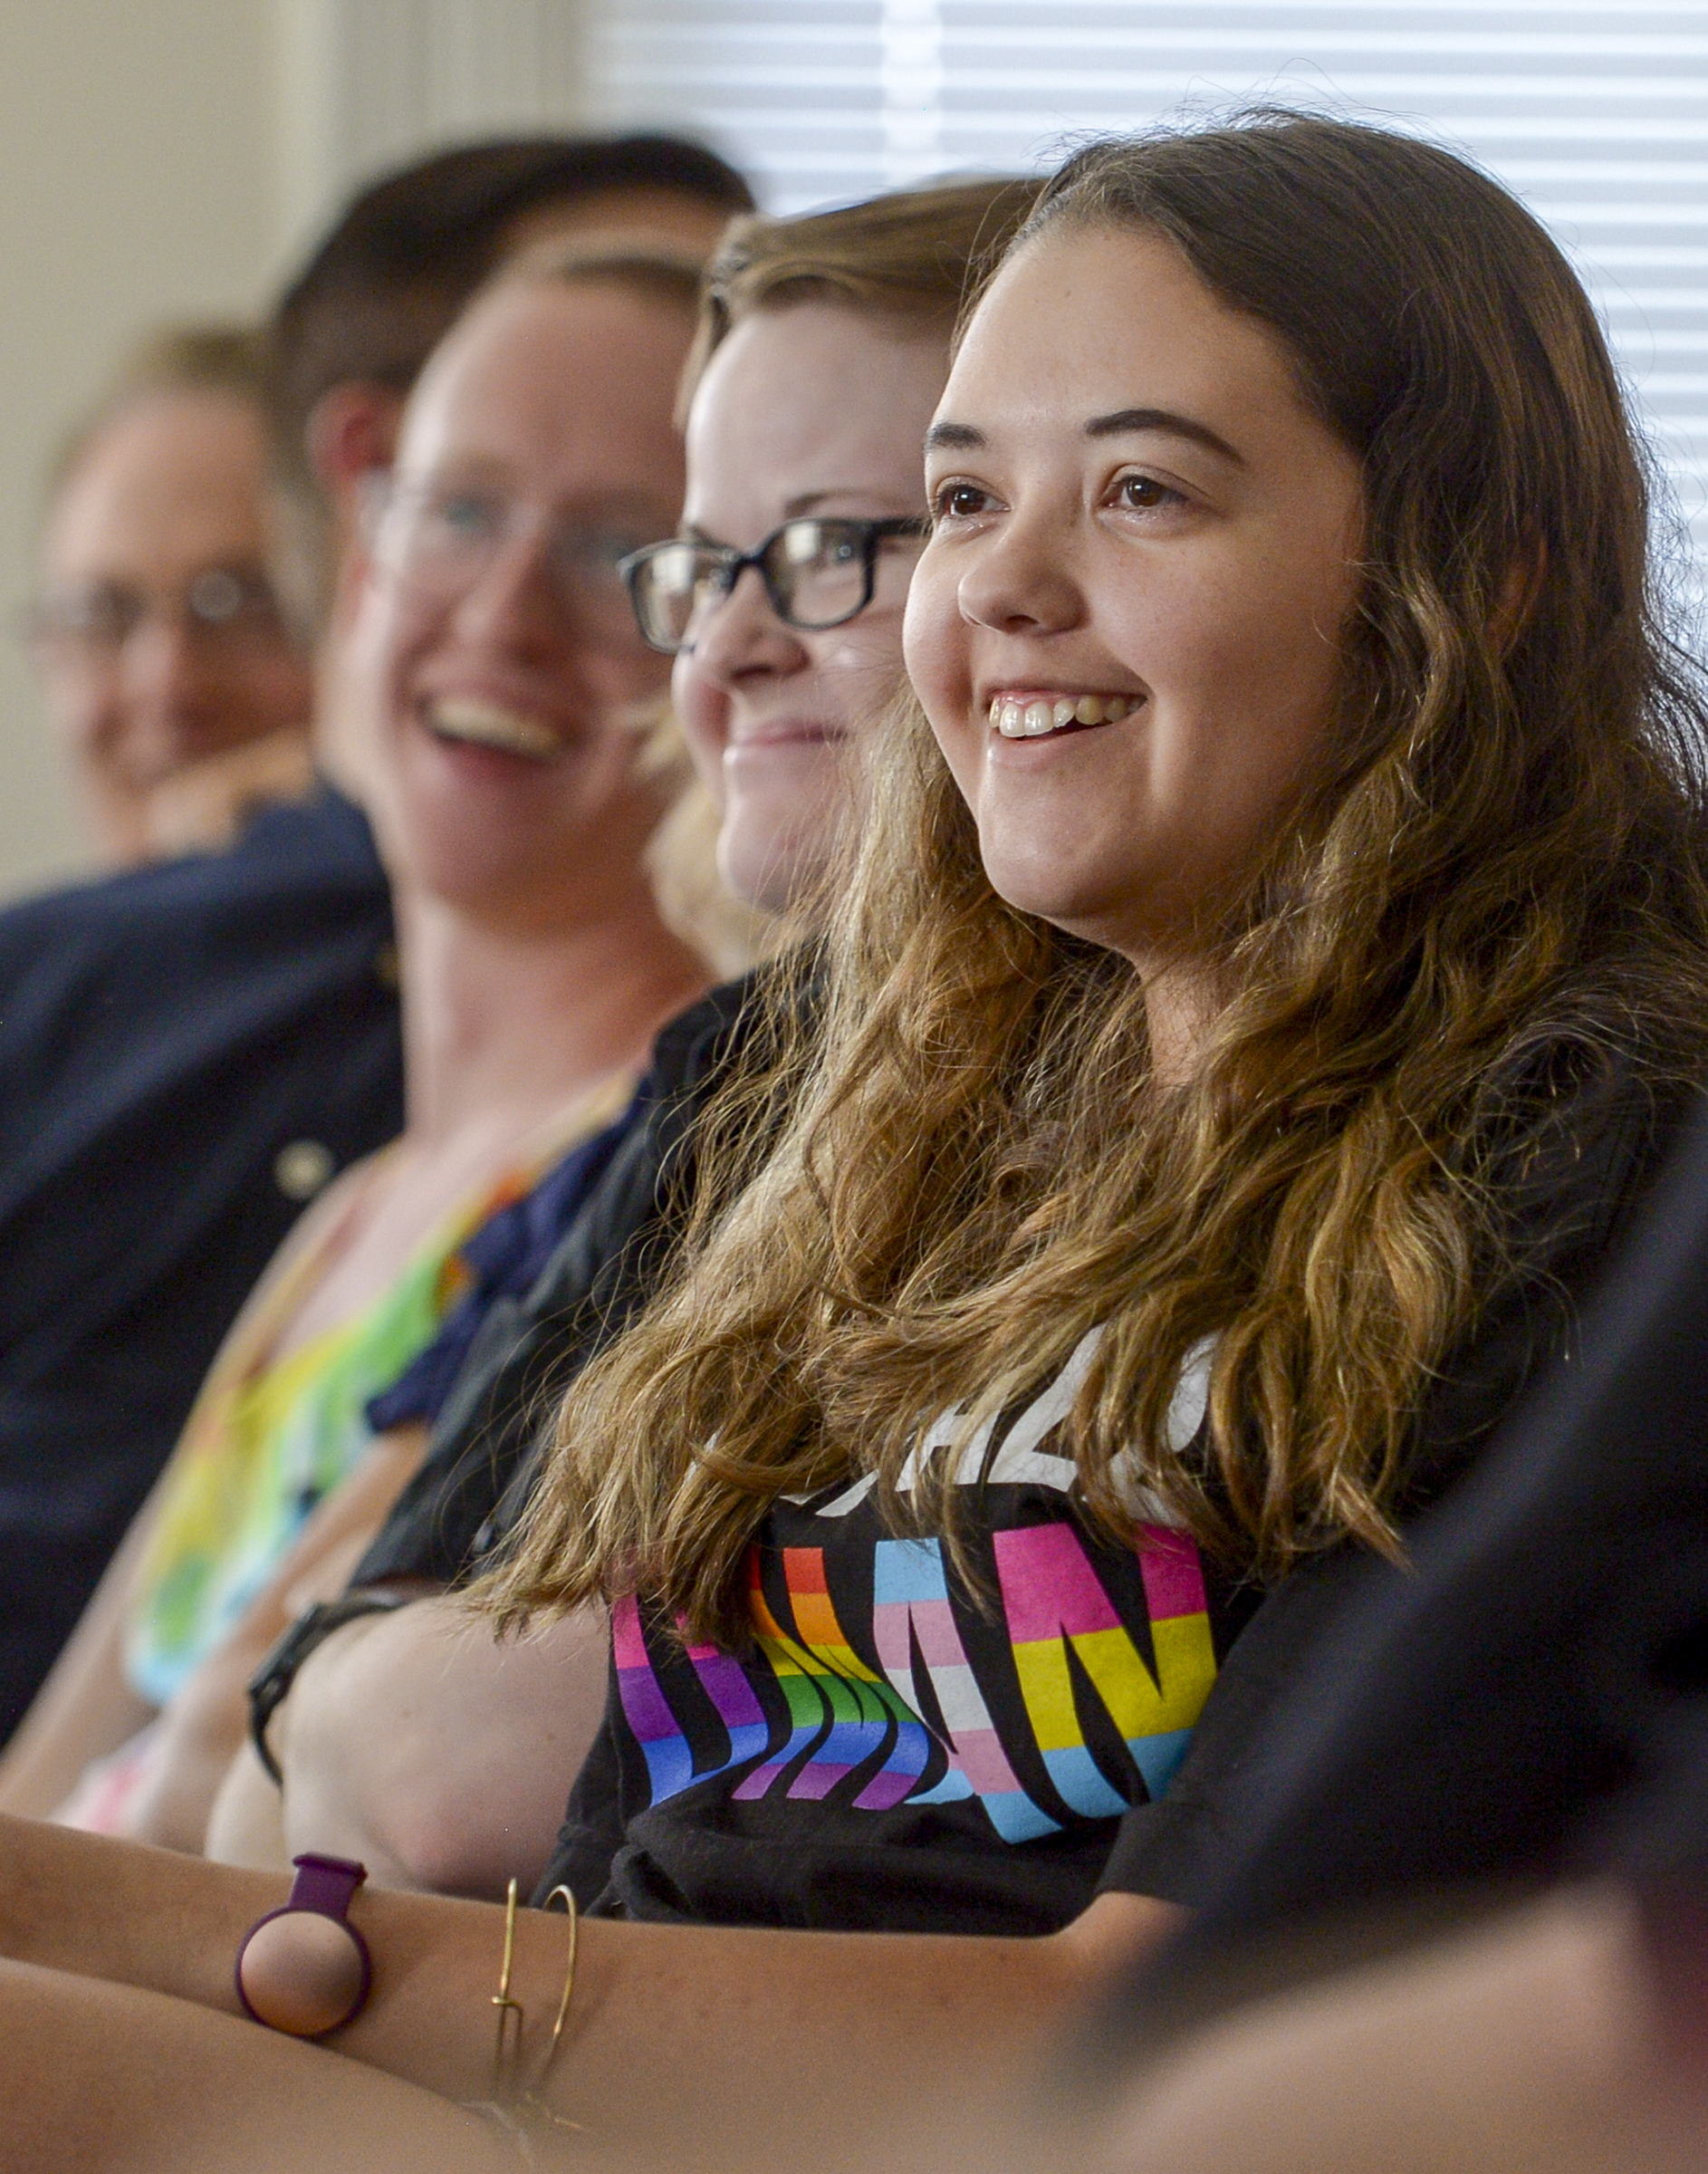 Leah Hogsten  |  The Salt Lake Tribune  LGBT Brigham Young University student Sam Ortiz meets with other USGA members at the Provo City Library, June 28, 2018 to hold open, respectful discussions on the topic of same-gender attraction. USGA is an organization for LGBT Brigham Young University students and their allies to discuss issues relating to homosexuality and the LDS Church.